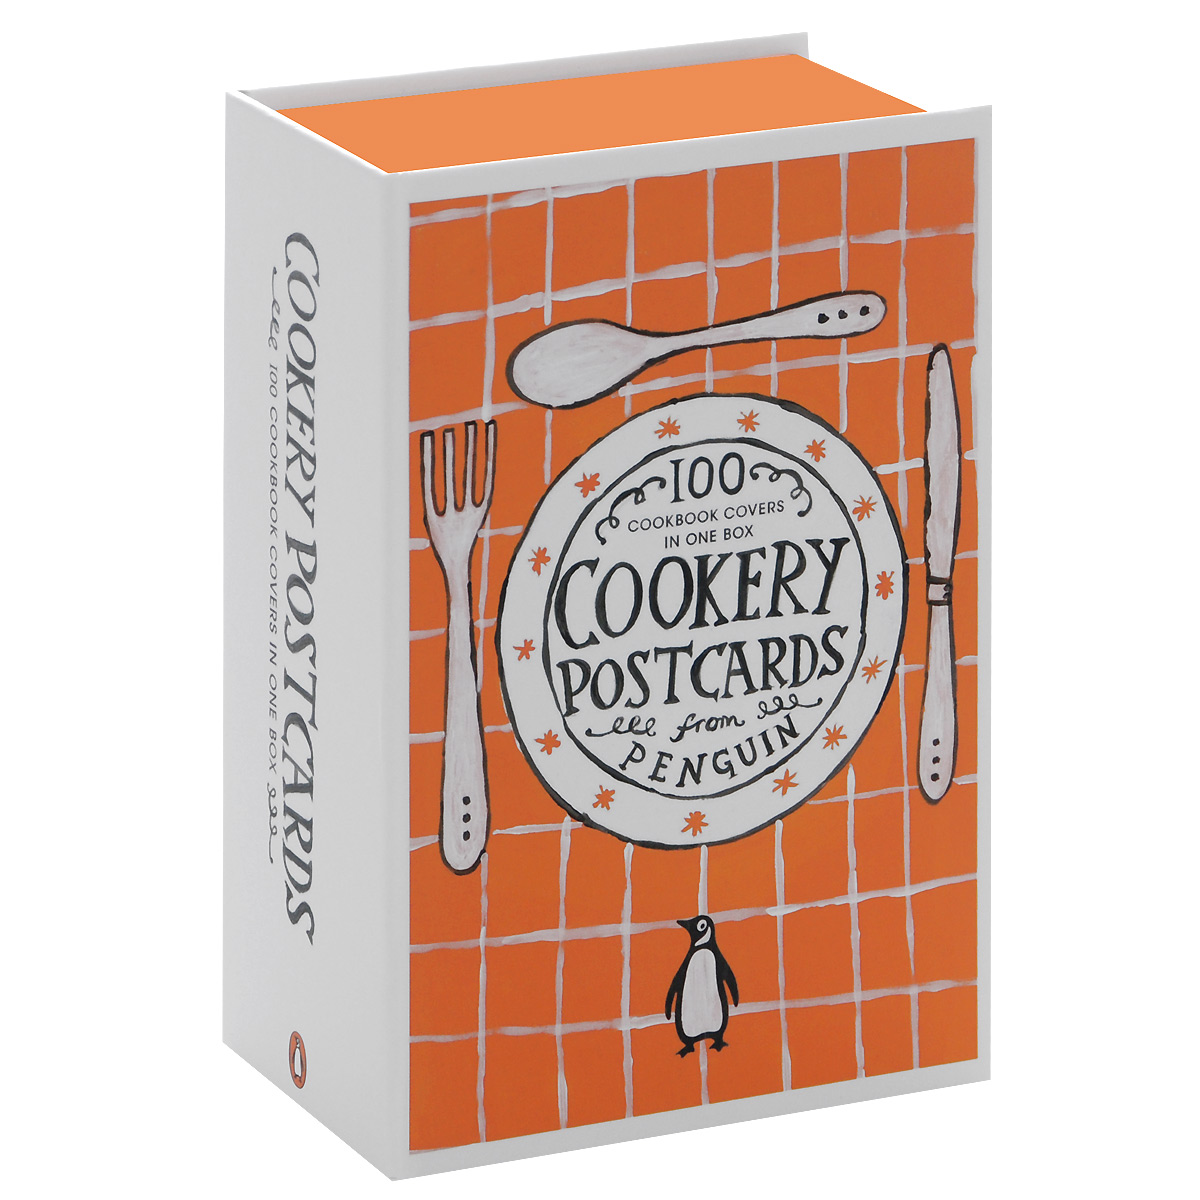 Cookery Postcards: 100 Cookbook Covers in One Box the last one